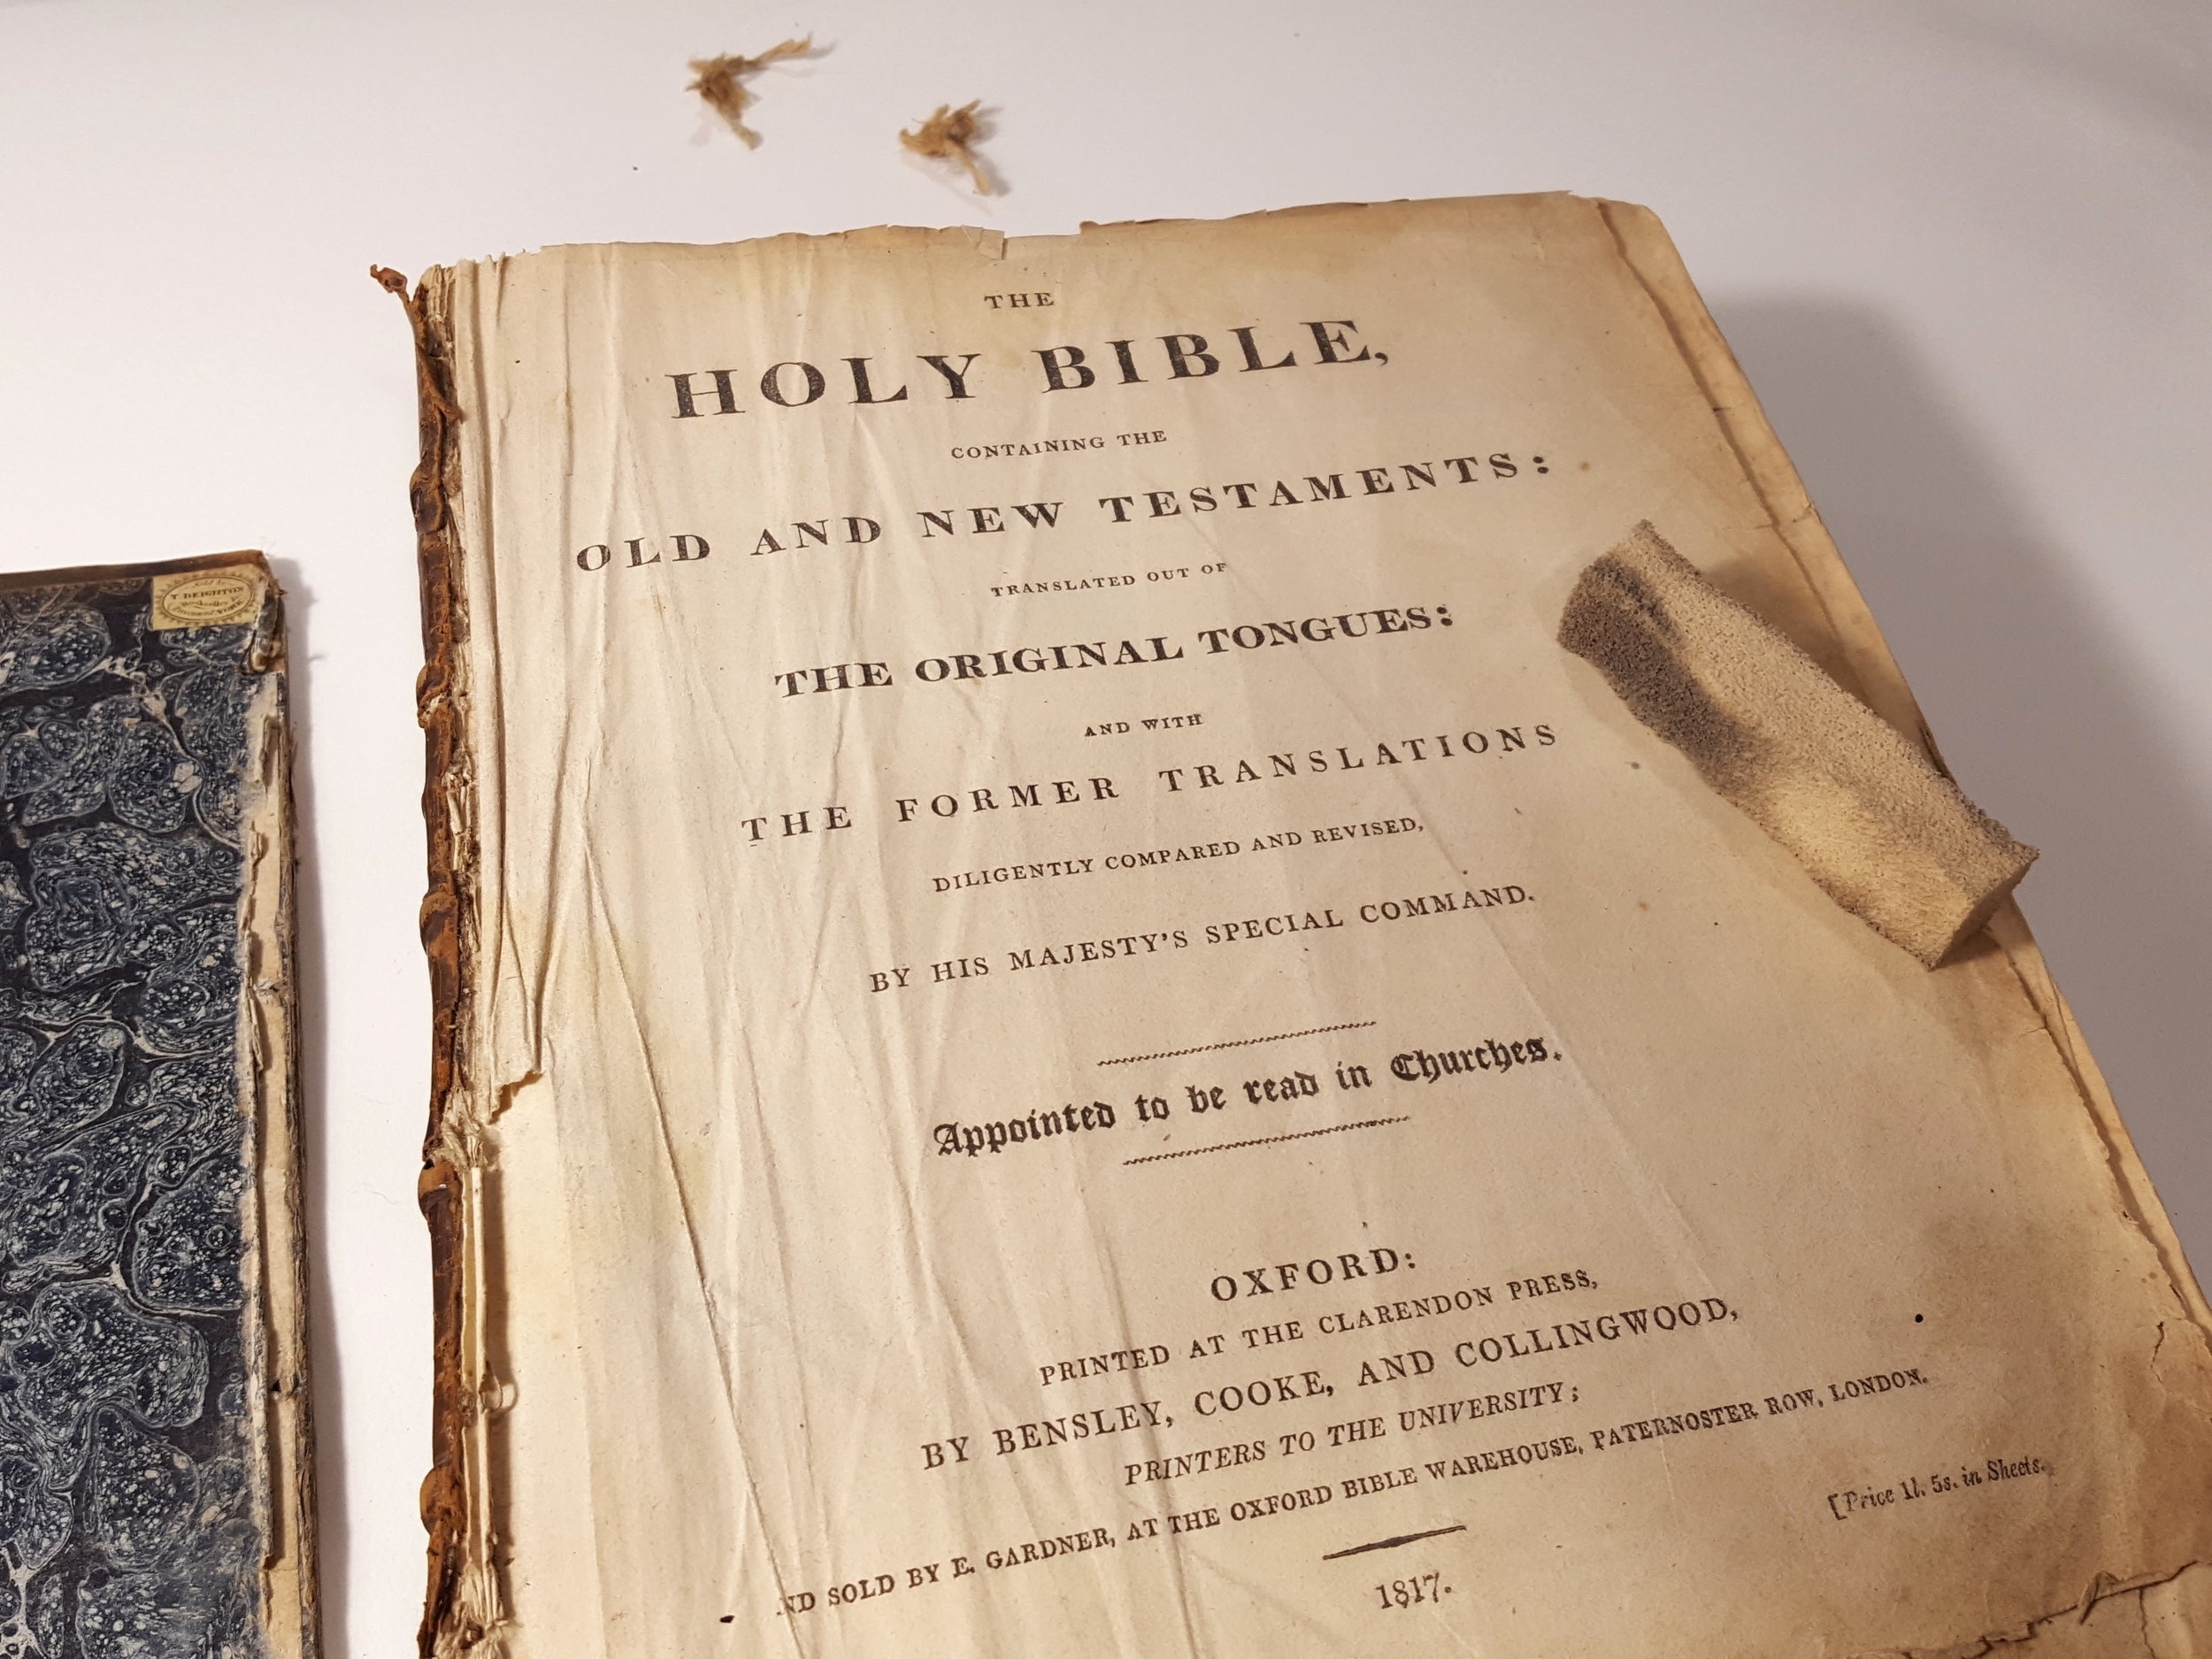 Surface cleaning grime from the Bible's title page.